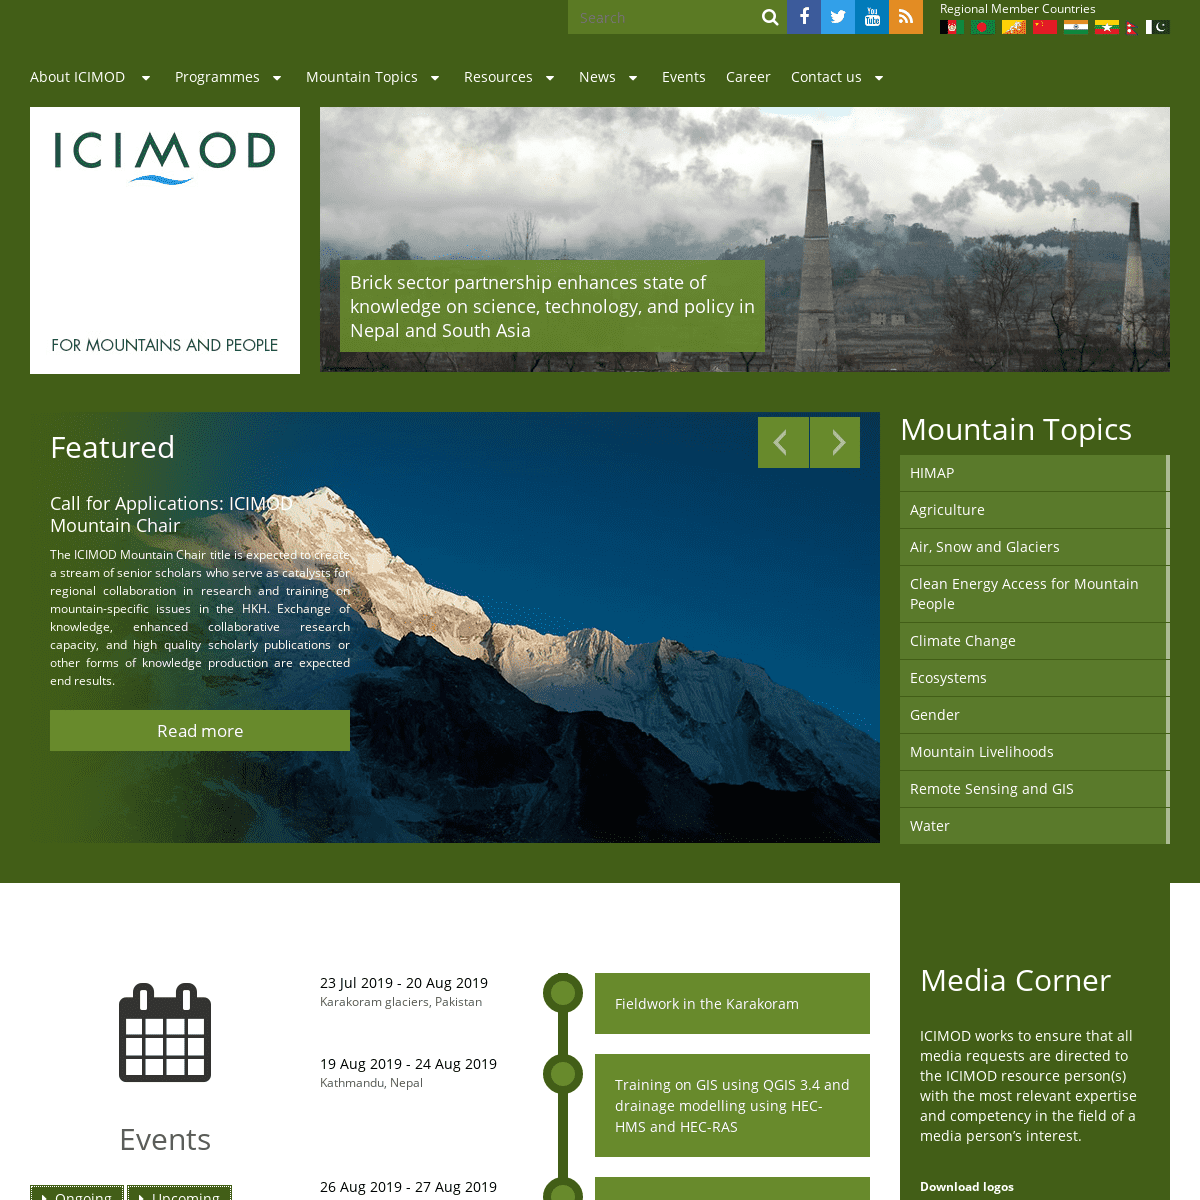 ArchiveBay.com - icimod.org - International Centre for Integrated Mountain Development (ICIMOD)